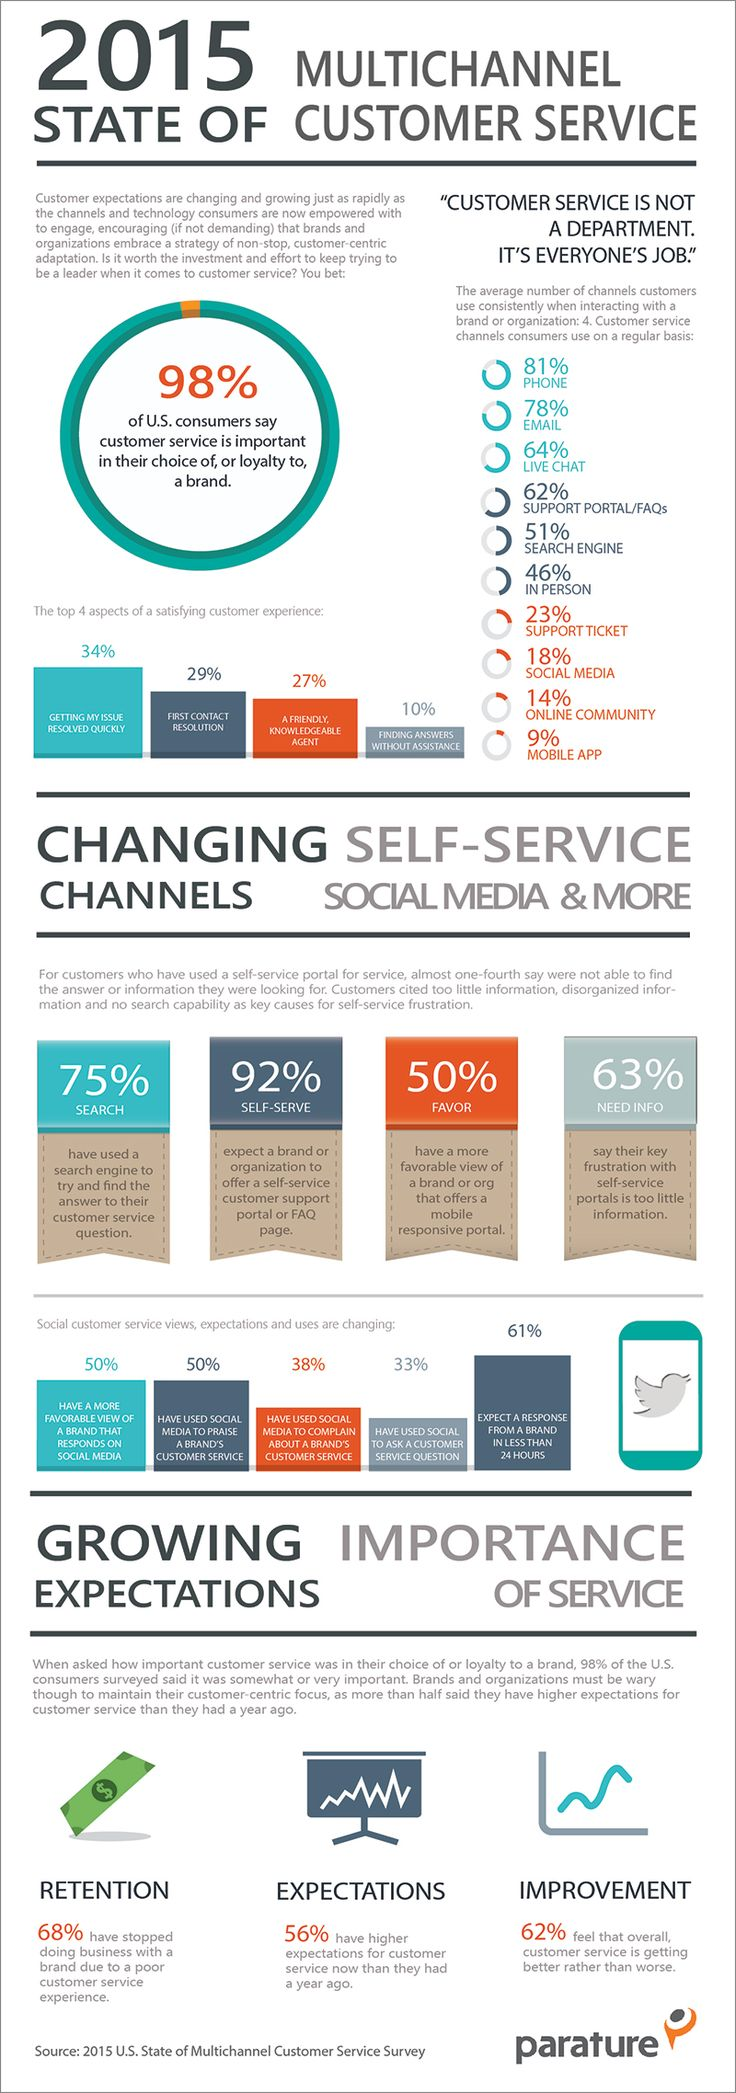 INFOGRAPHIC: 2015 State of Multichannel Customer Service - Parature http://www.parature.com/multichannel-customer-service-infographic/?utm_content=buffer0f861&utm_medium=social&utm_source=pinterest.com&utm_campaign=buffer